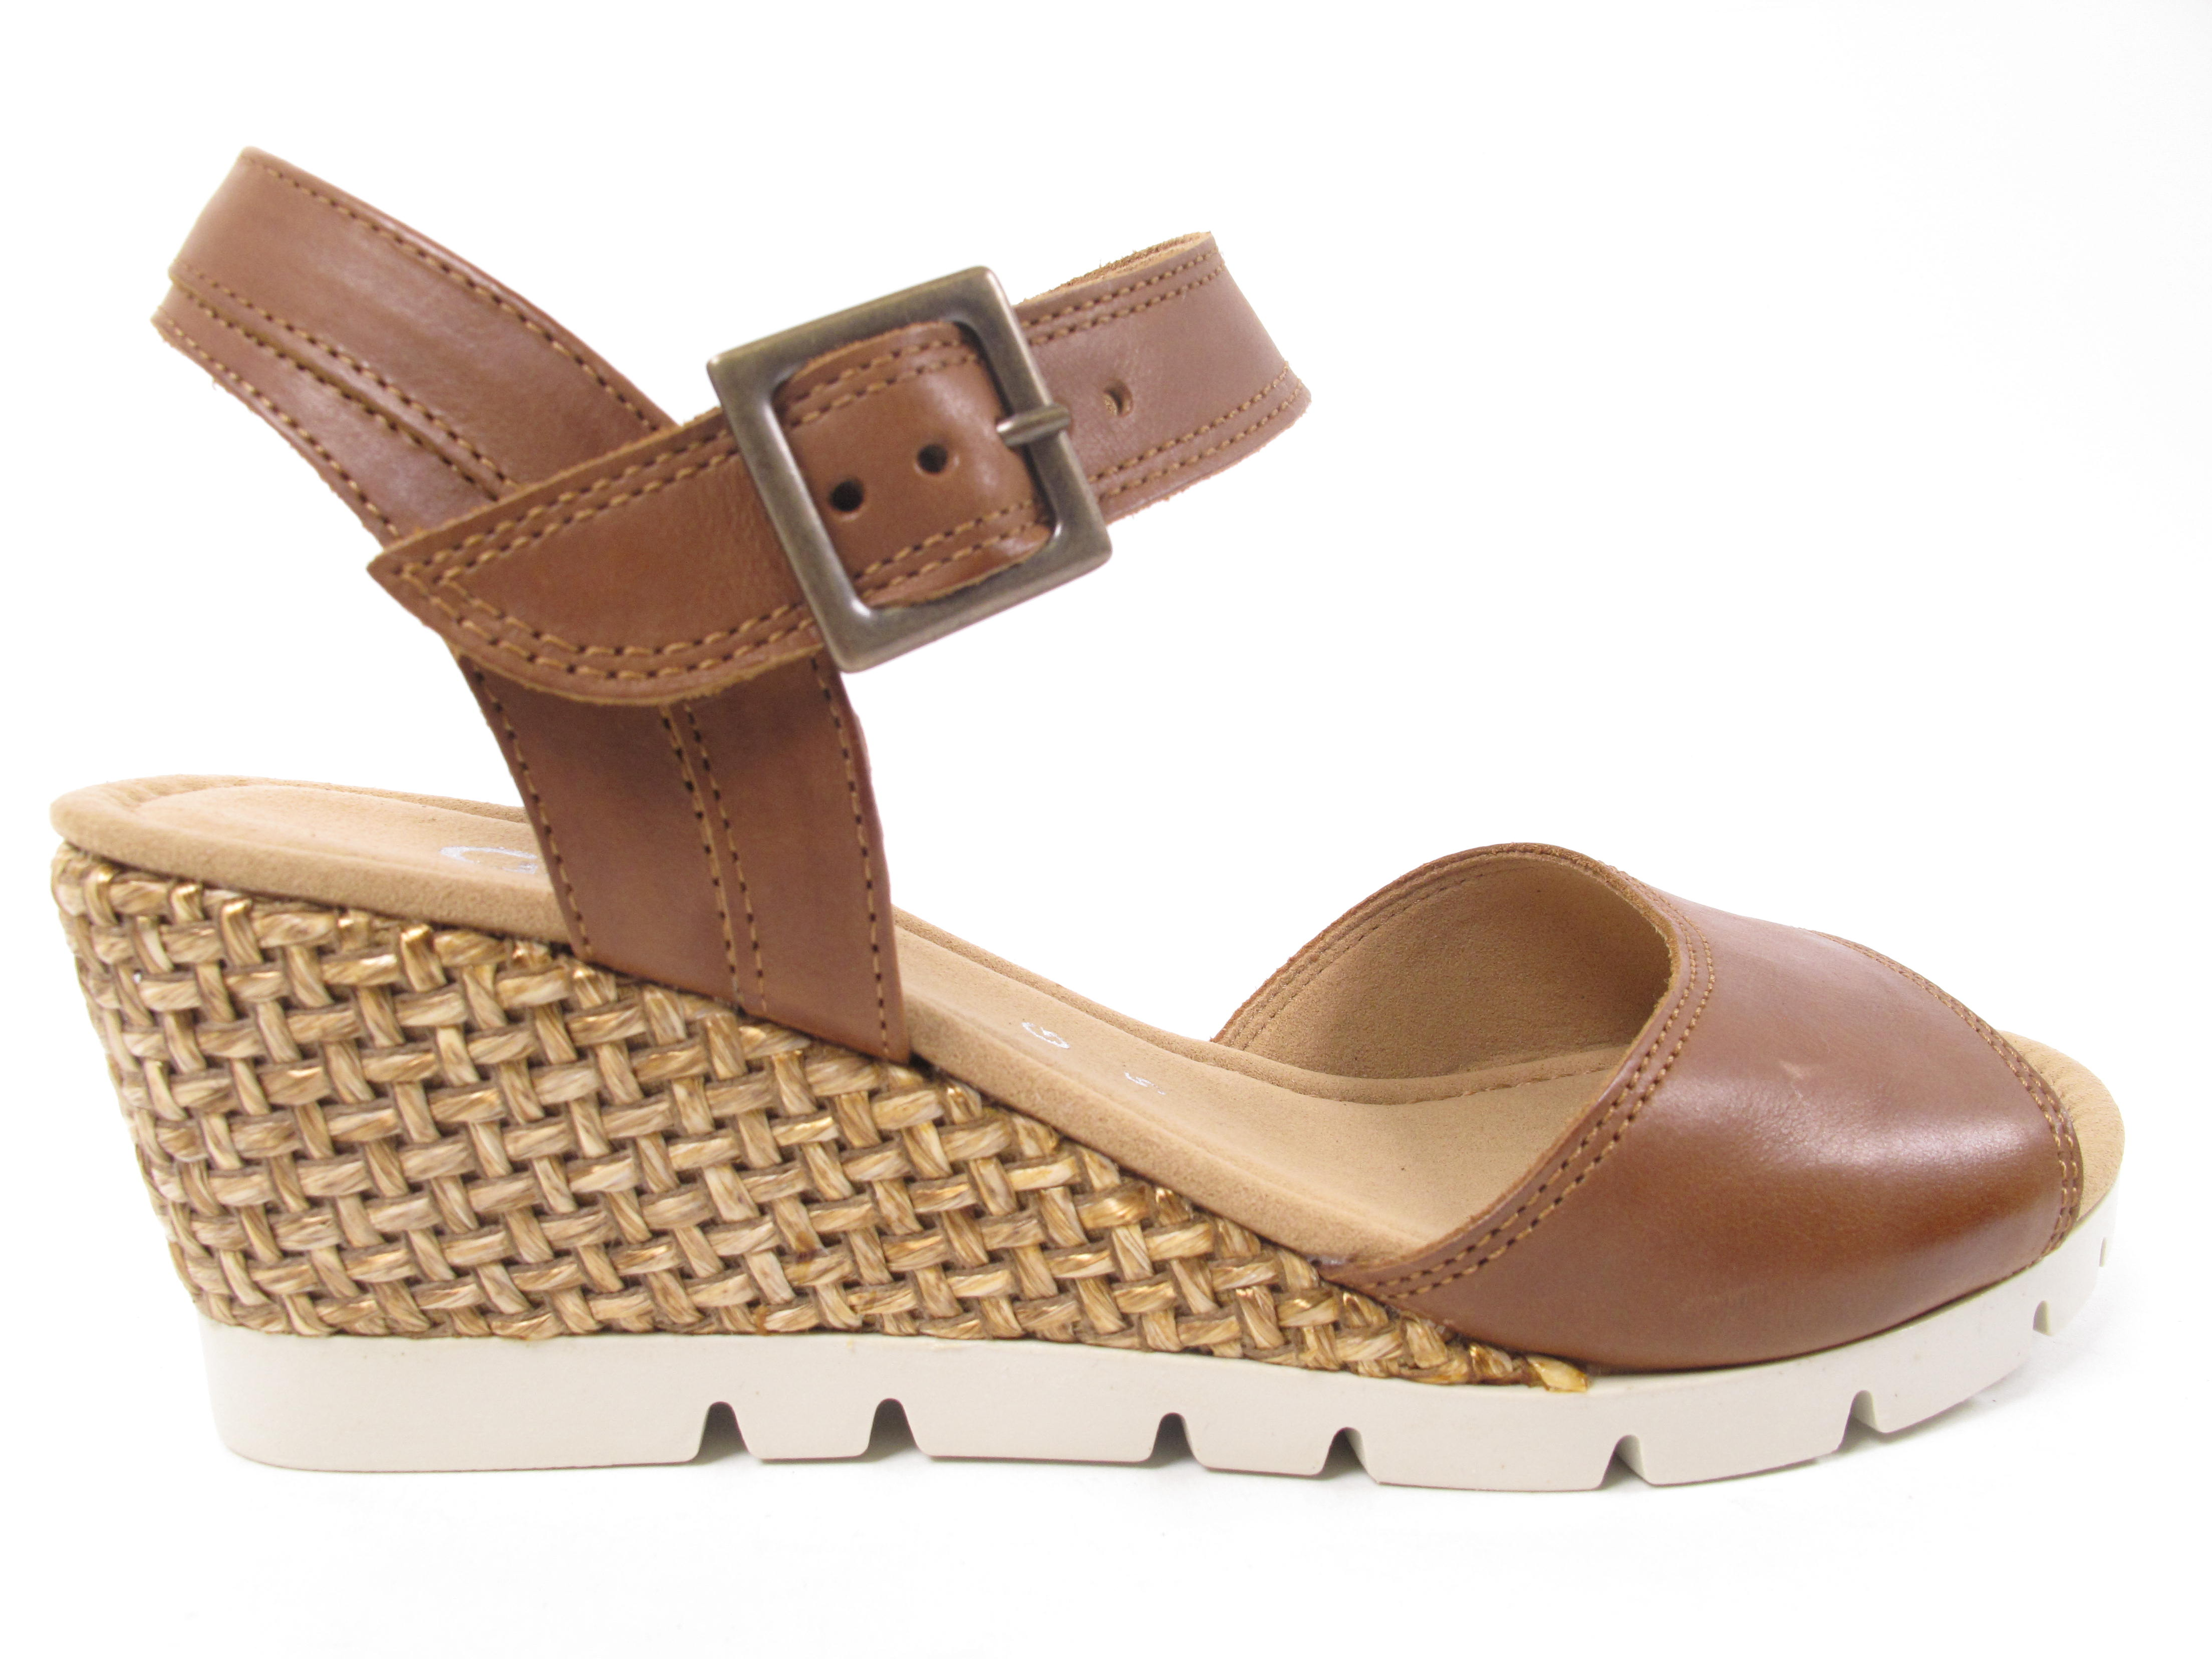 Gabor Tunis Women's Sandals Mules Summer shoes 22.842.53 Brown New